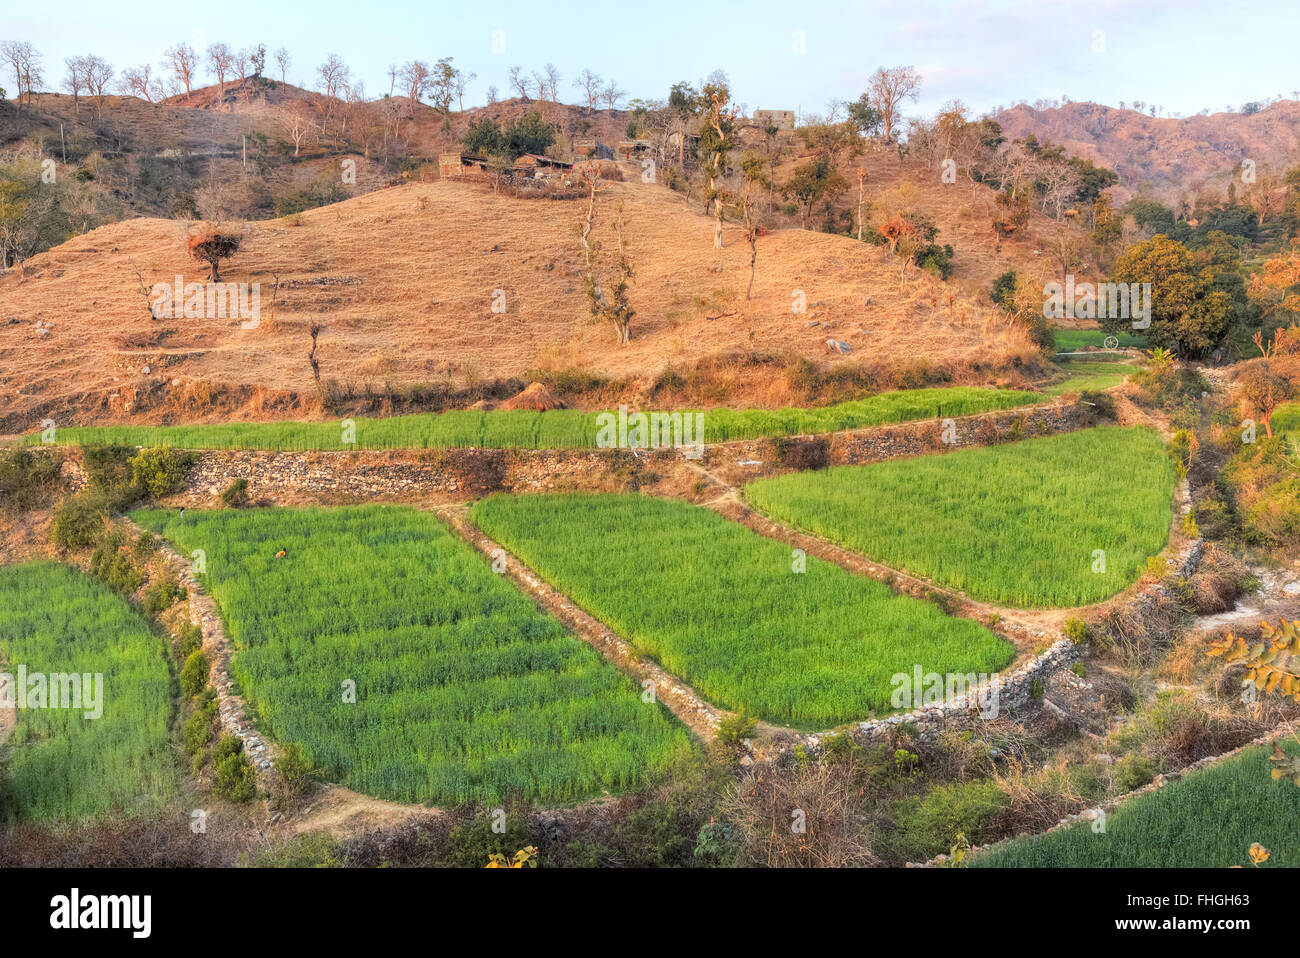 irrigiated weaht fields in the middle of the dry mountains of Rajasthan, India - Stock Image